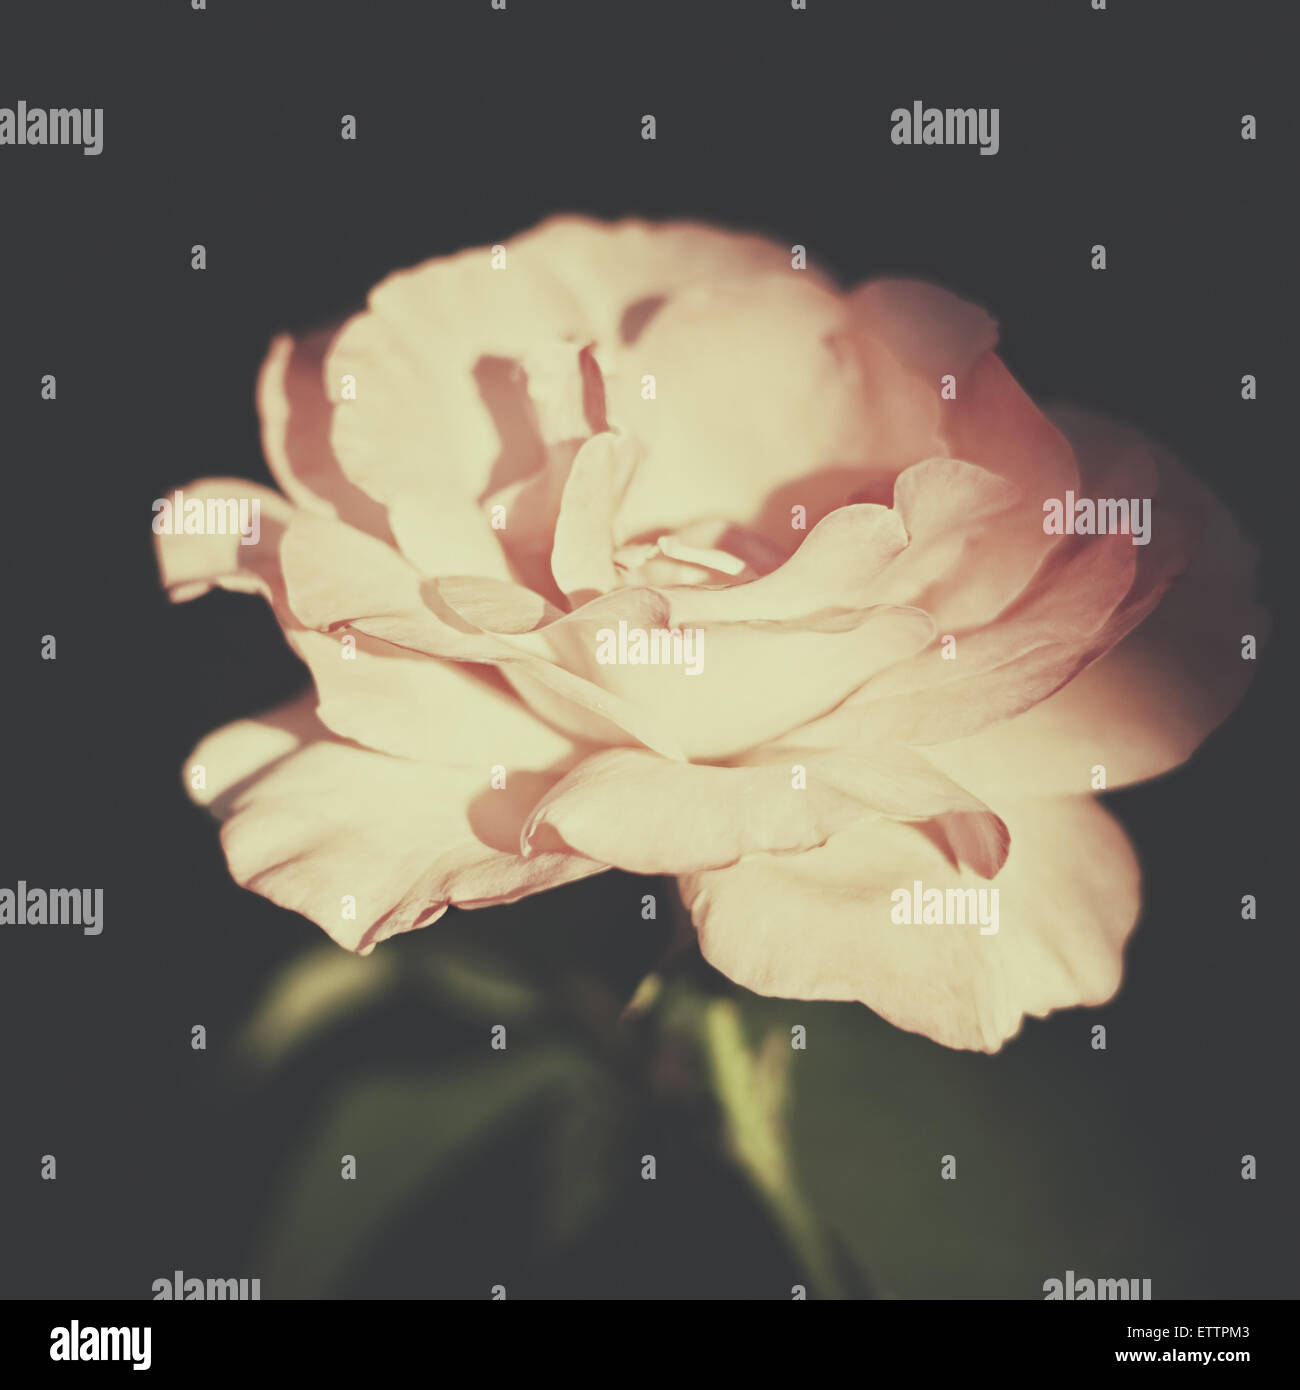 Retro Flower Vintage Floral Backgrounds With Pink Rose Stock Photo